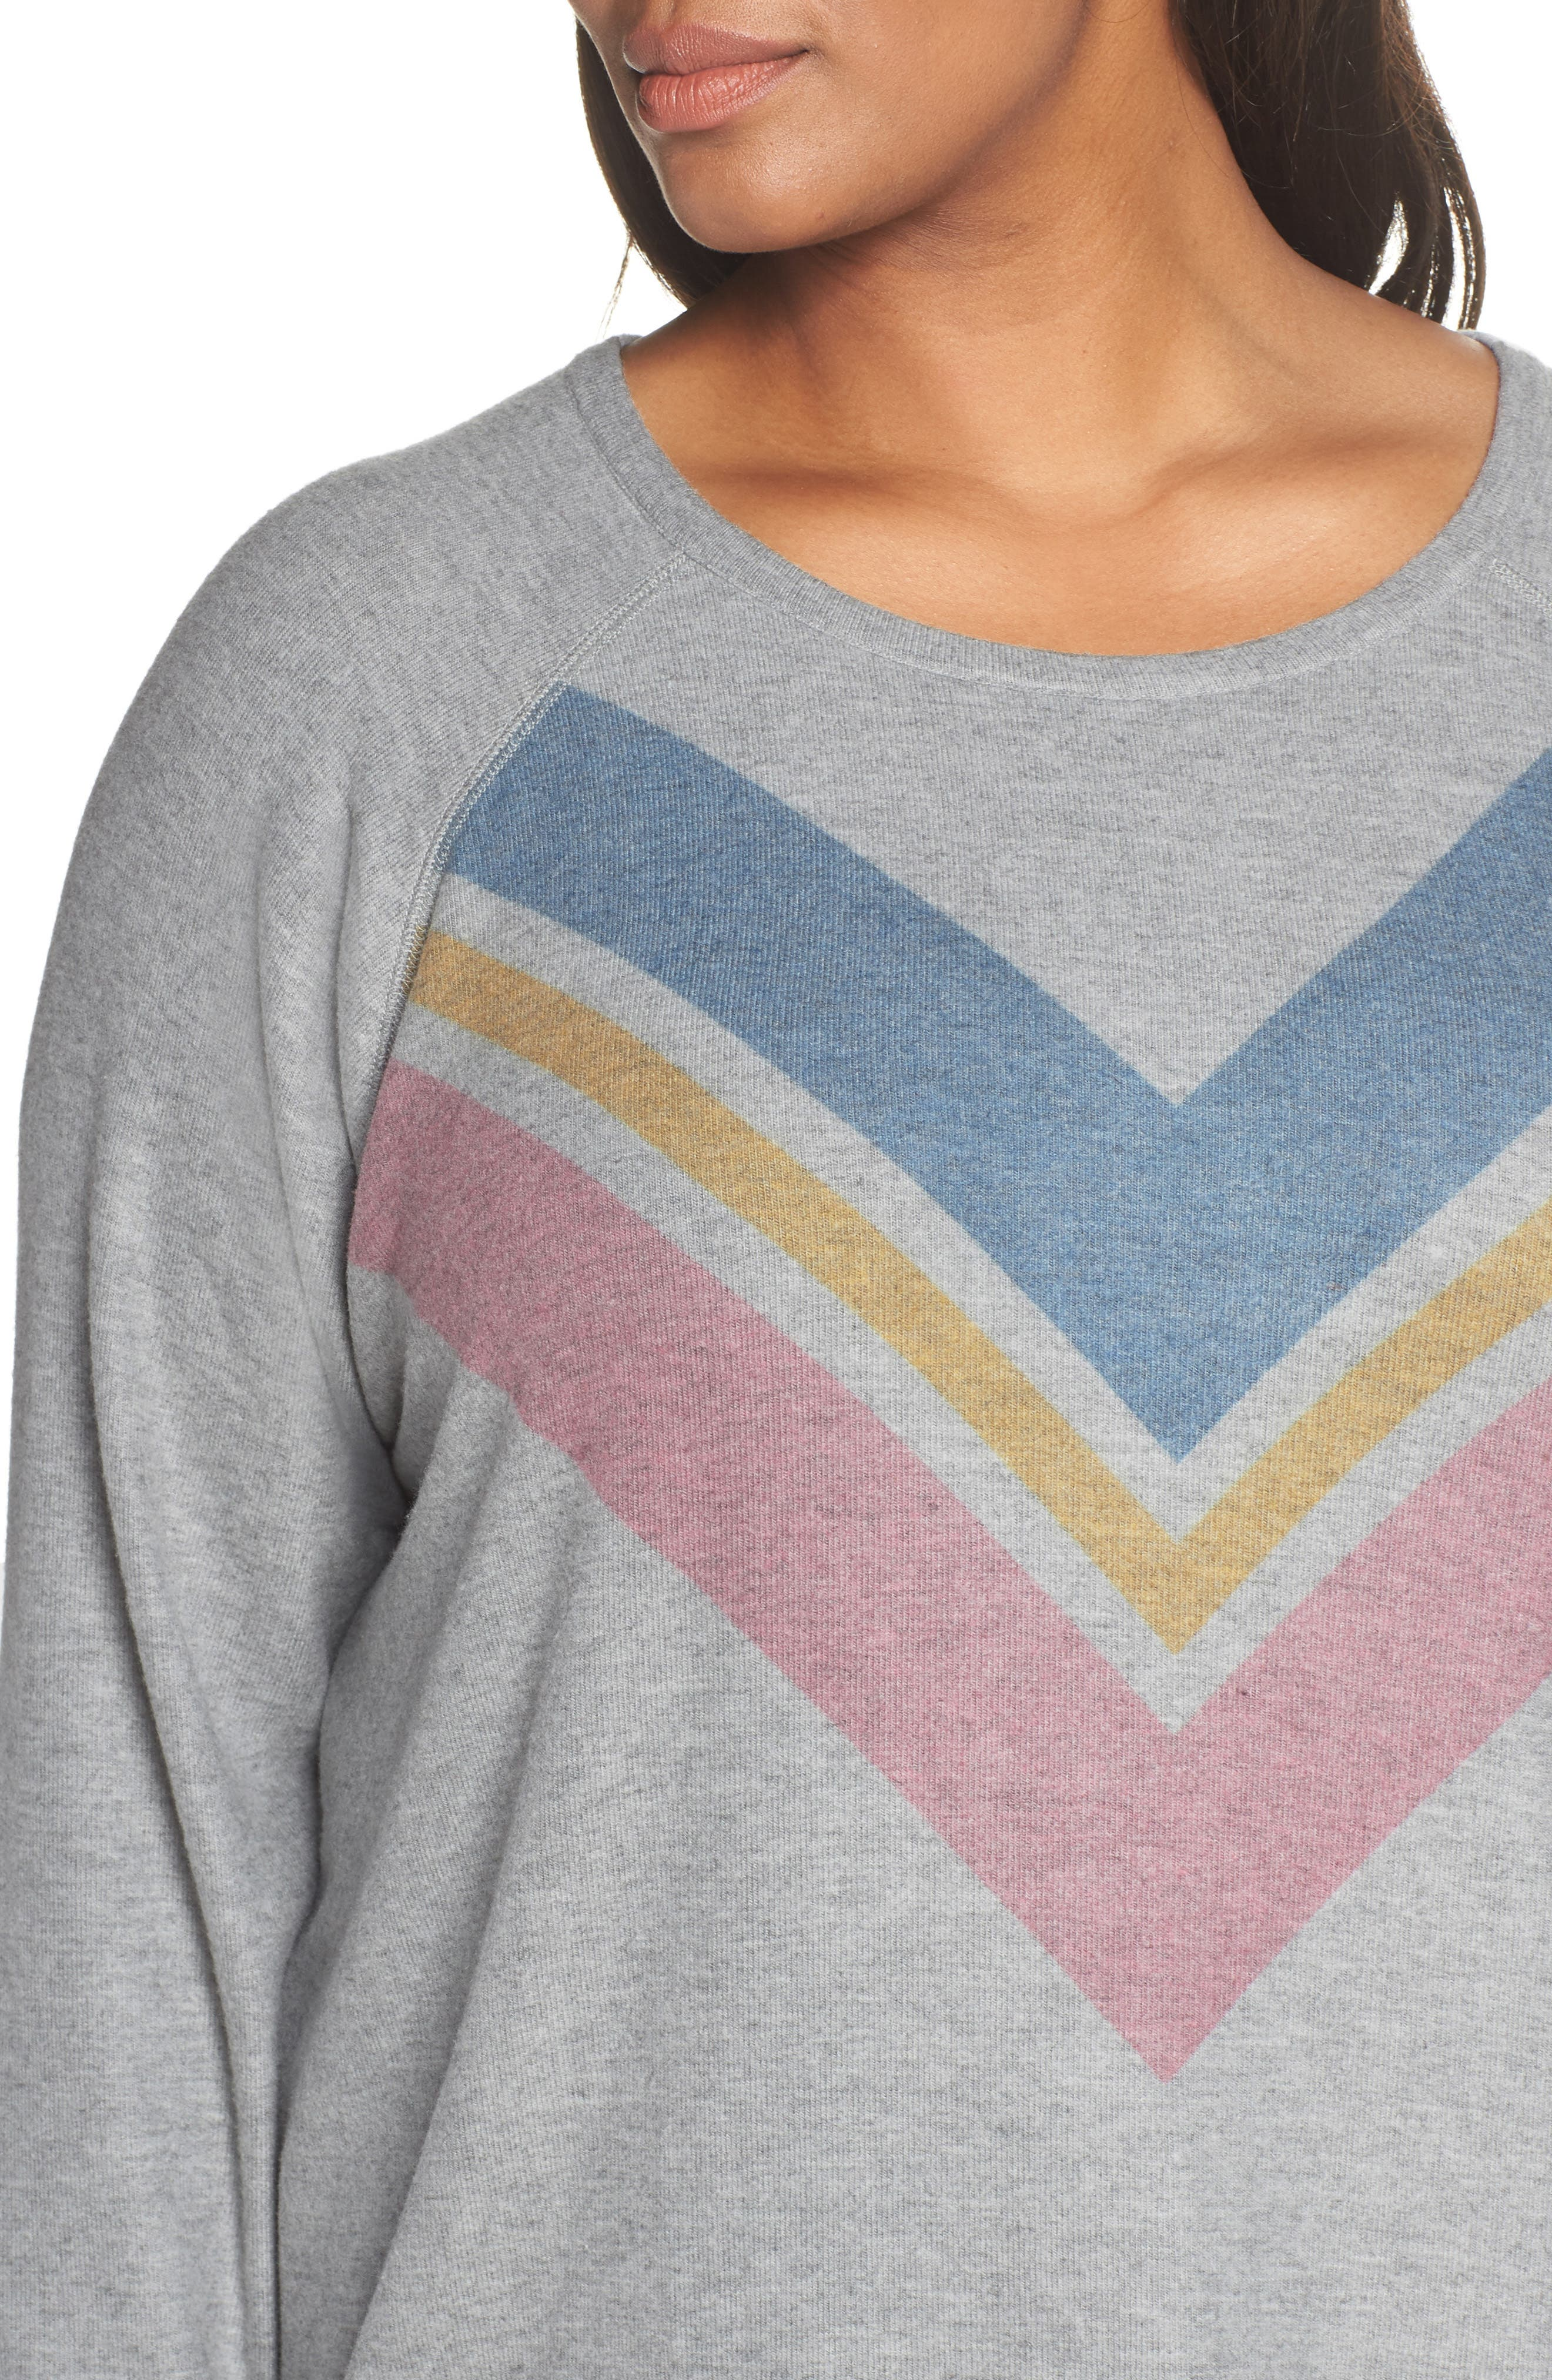 Lounge Essentials Chevron Pullover,                             Alternate thumbnail 4, color,                             HEATHER GREY